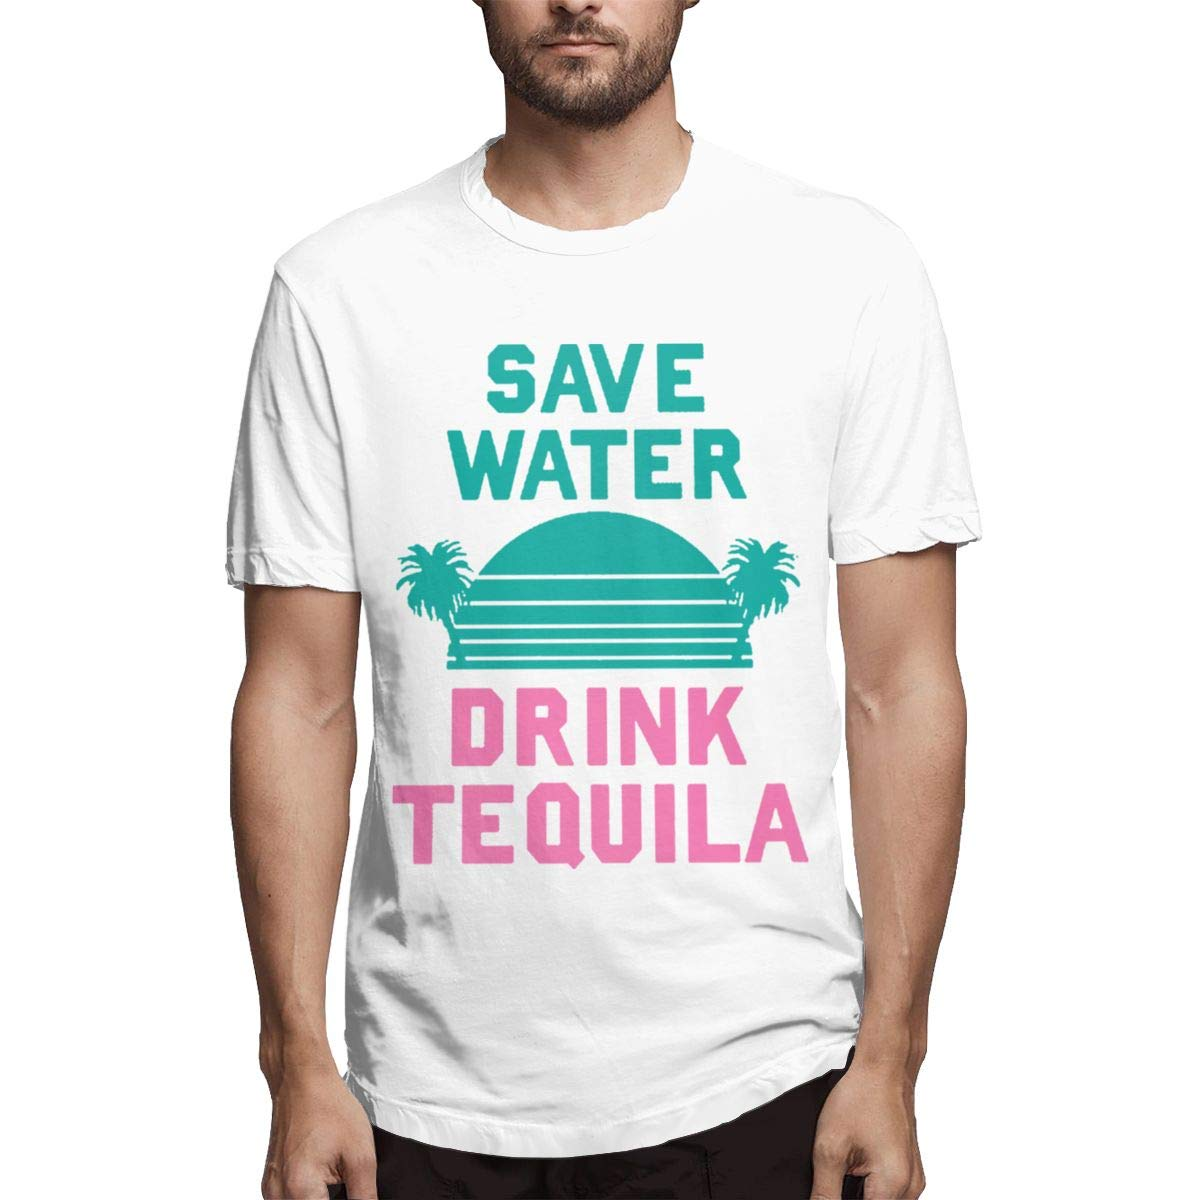 LANBRELLA Mens Save Water Drink Tequila Humor Crew-Neck Short Sleeve T-Shirt for Mens